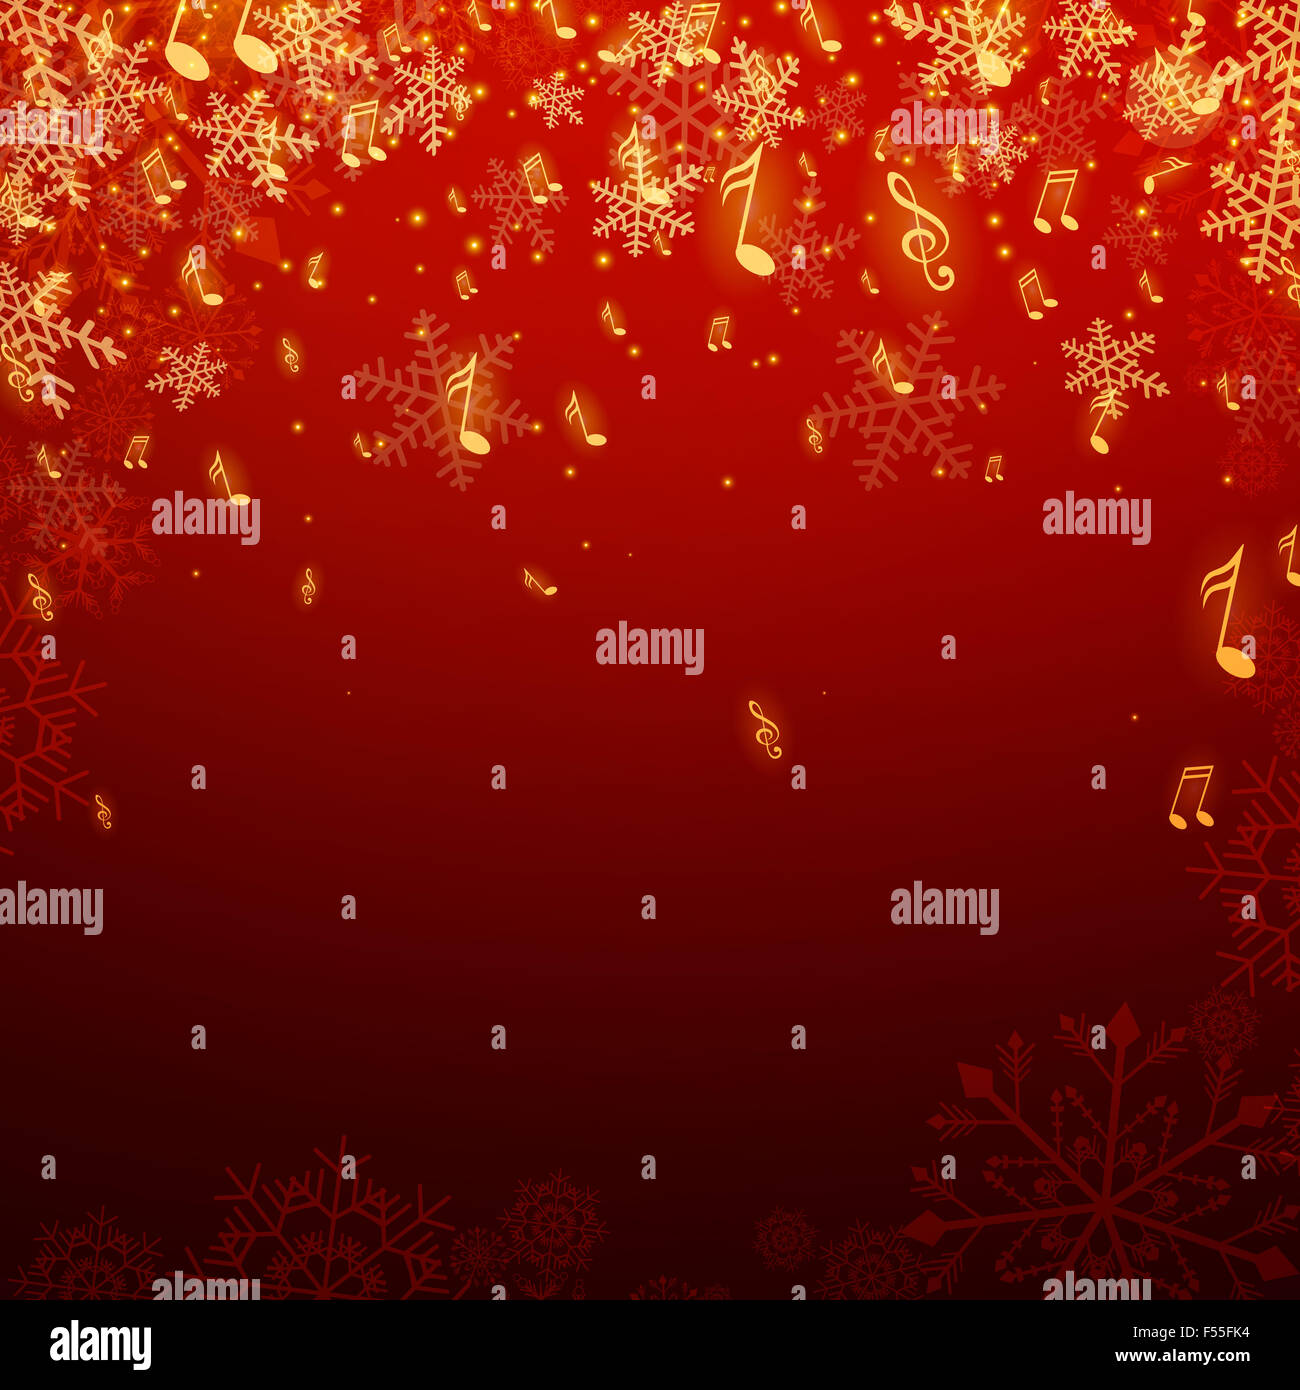 Christmas Music Background.Illustration Of A Christmas Music Background Stock Photo